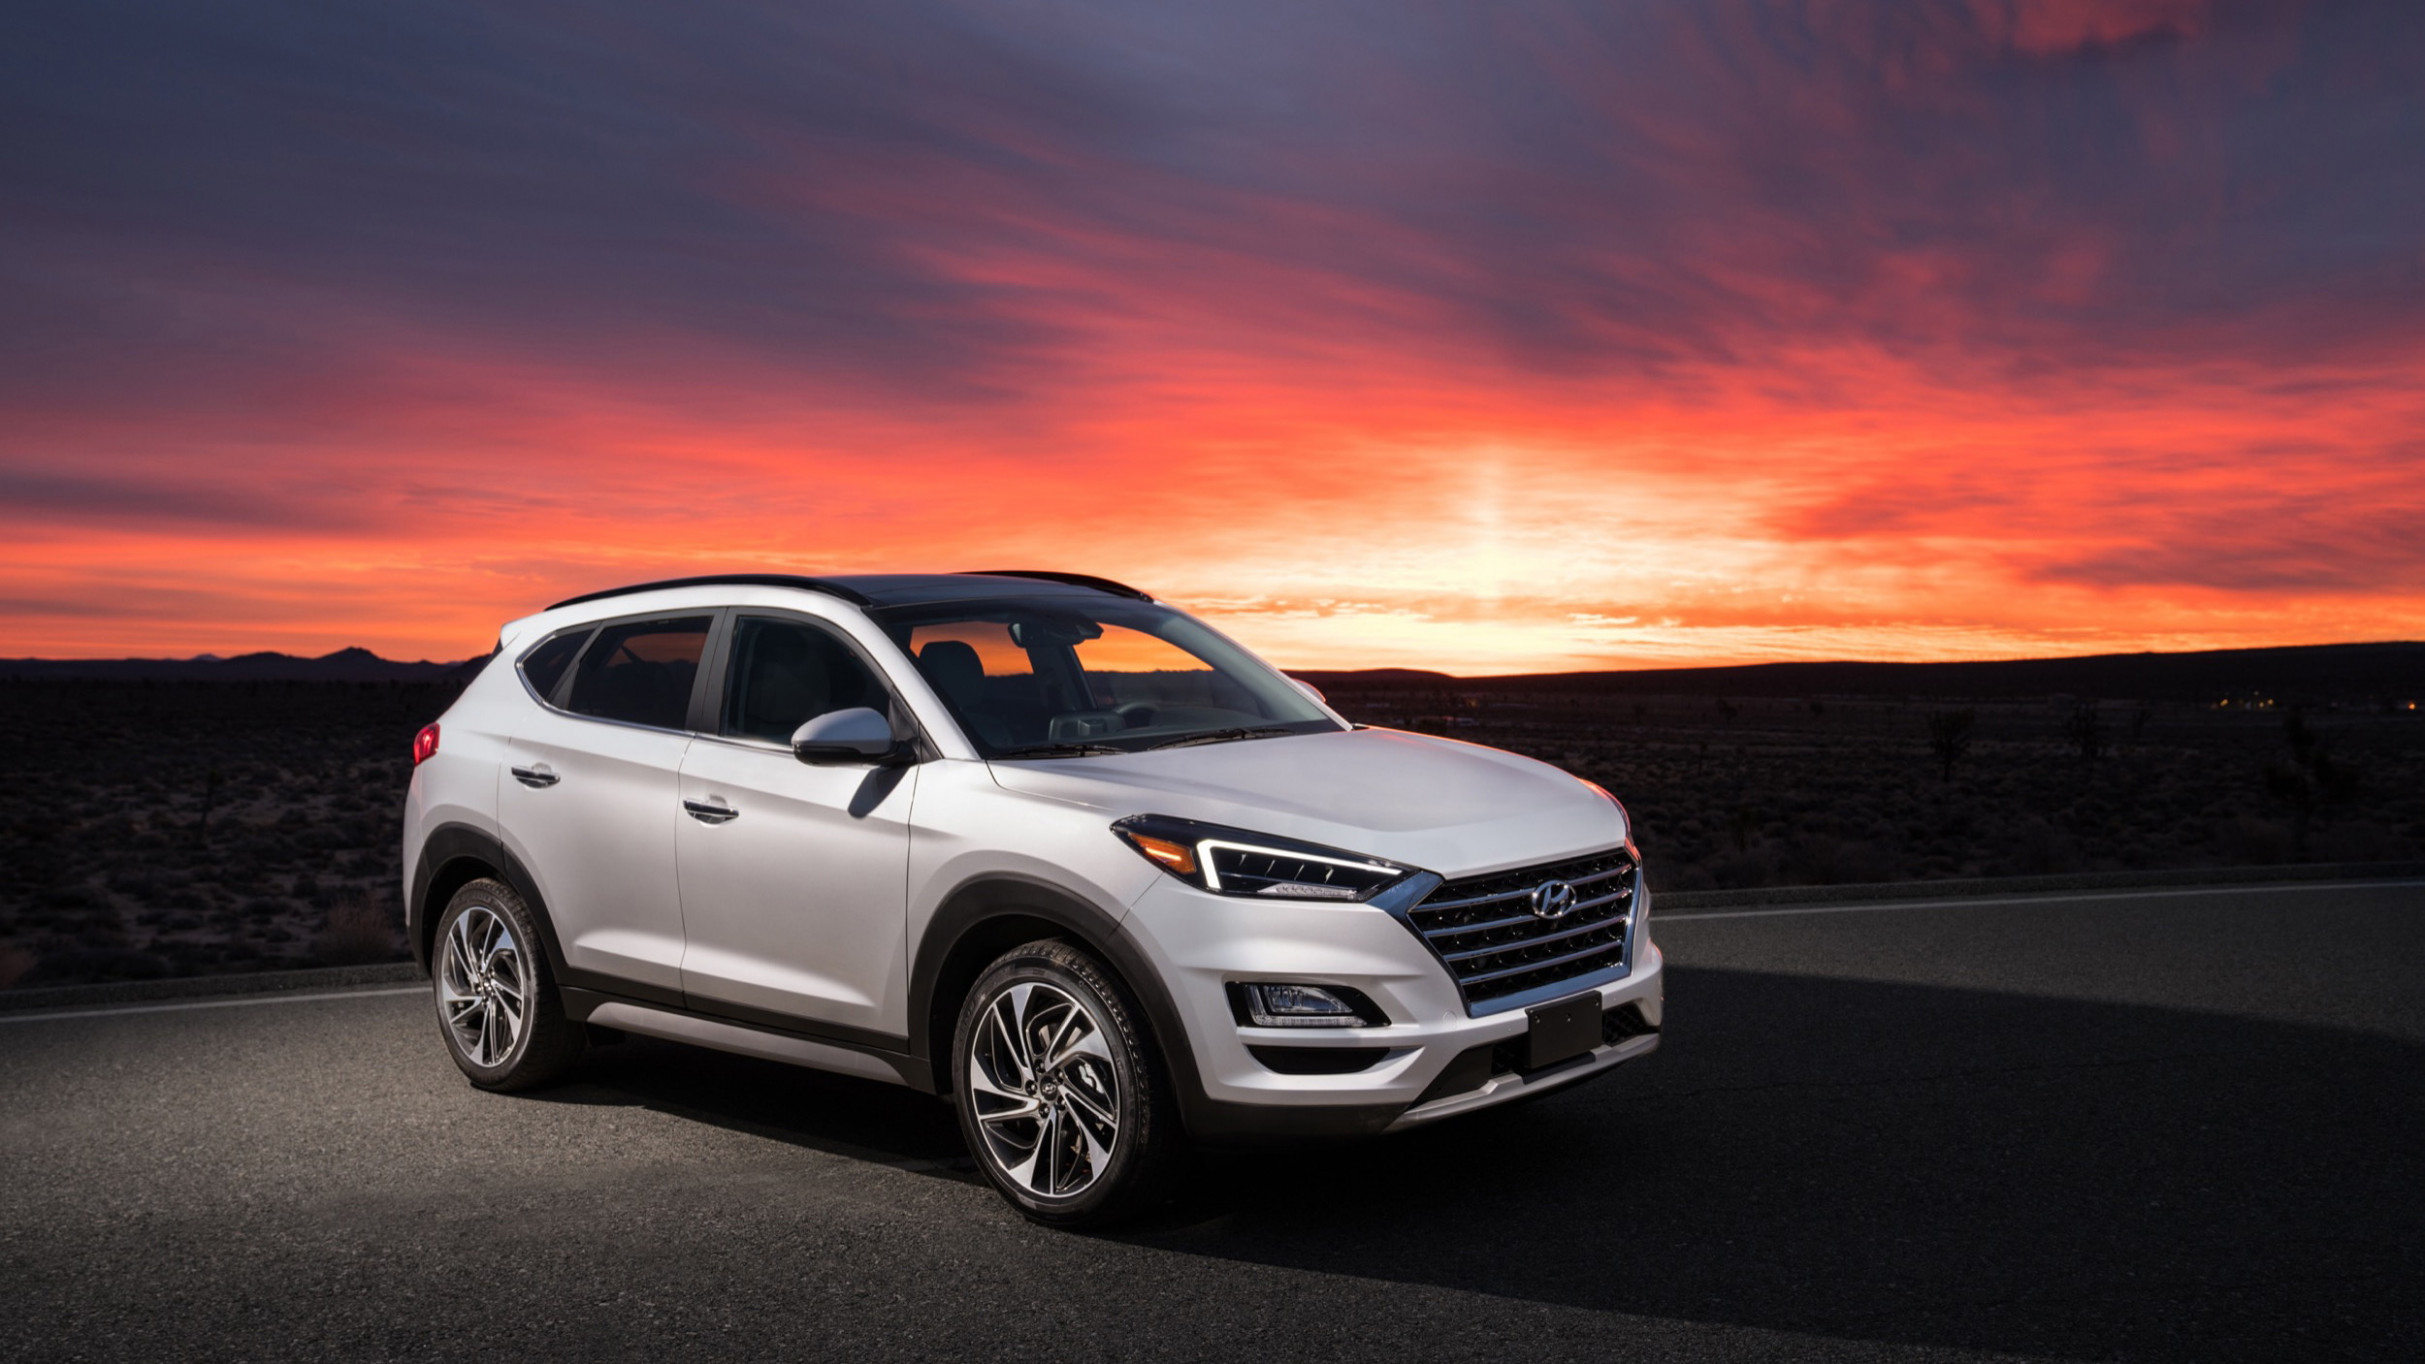 8 Hyundai Tucson Reviews | Price, specs, features and photos ..